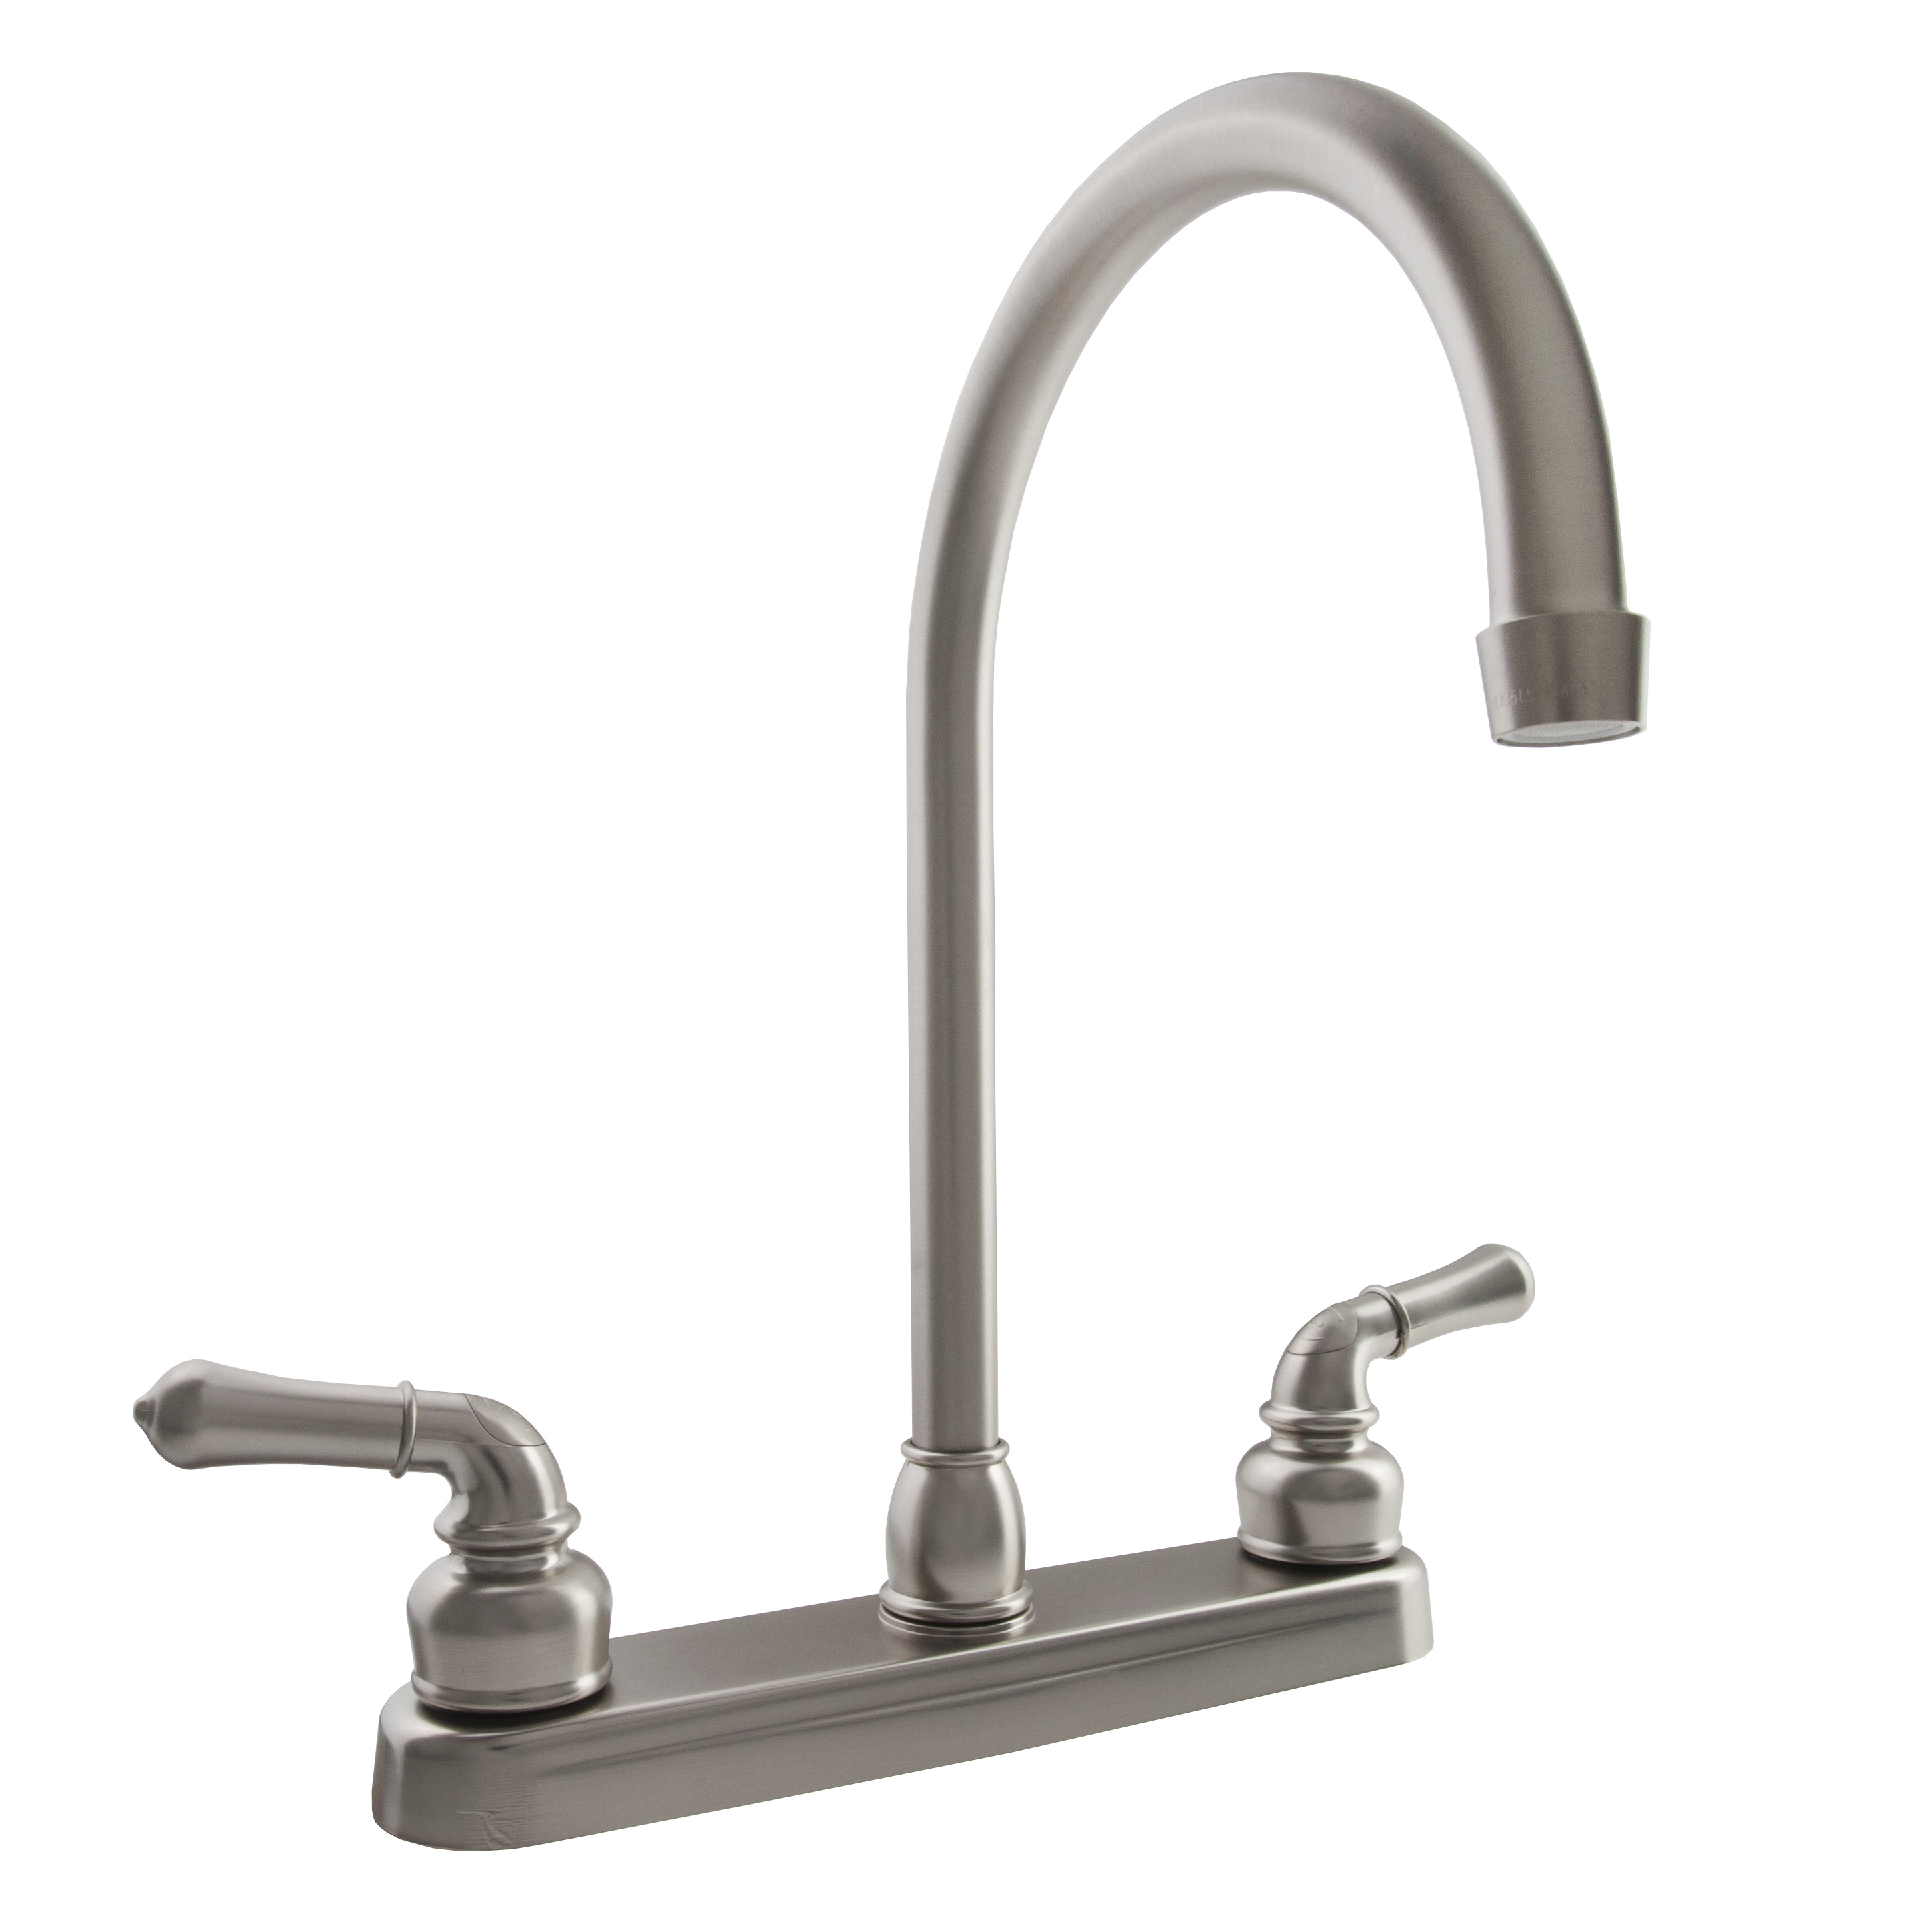 DF-PK330HC-SN Dura Faucet Faucet Used For Kitchen